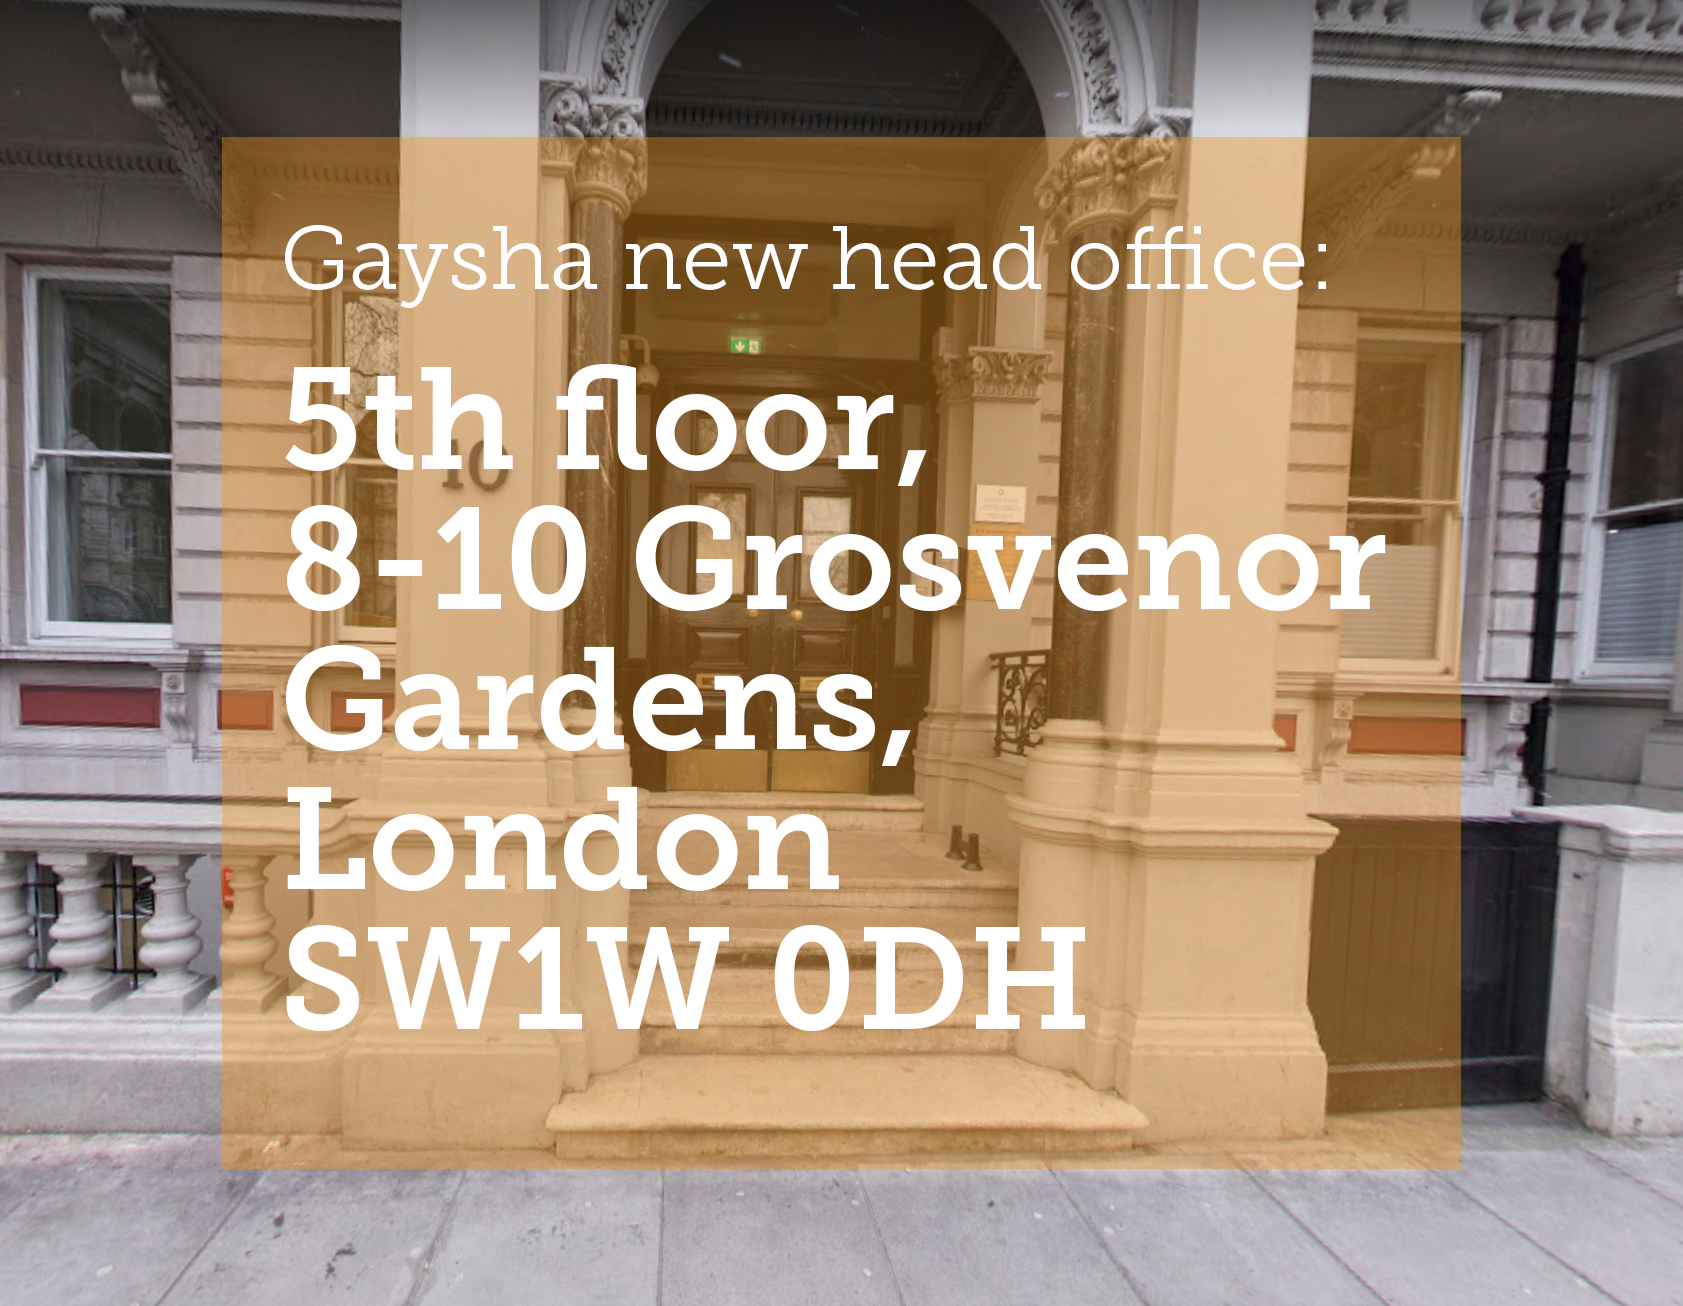 Gaysha moves to a new head office in Belgravia